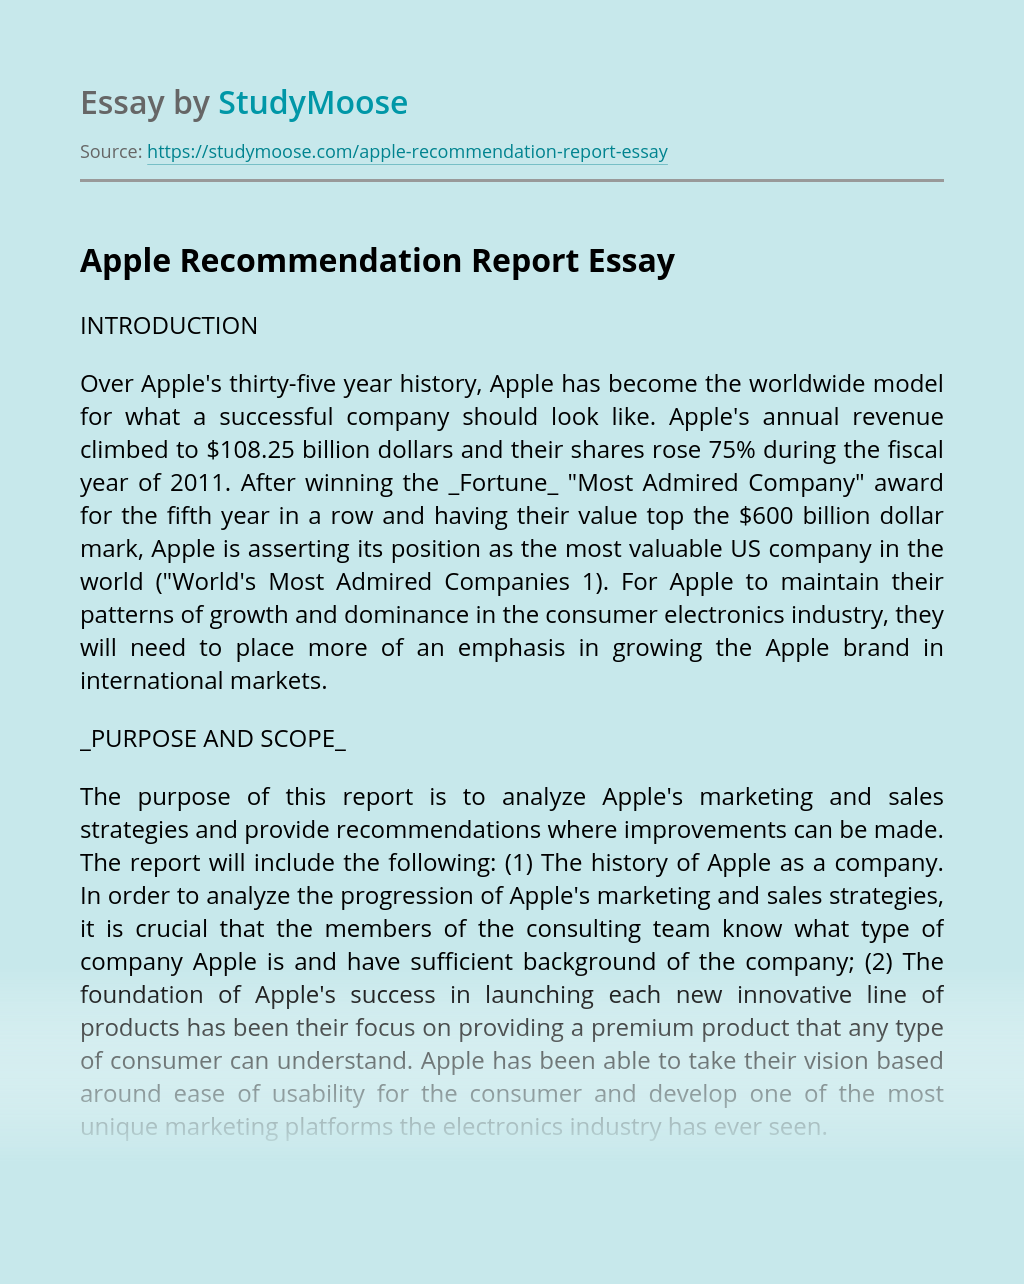 Apple Recommendation Report